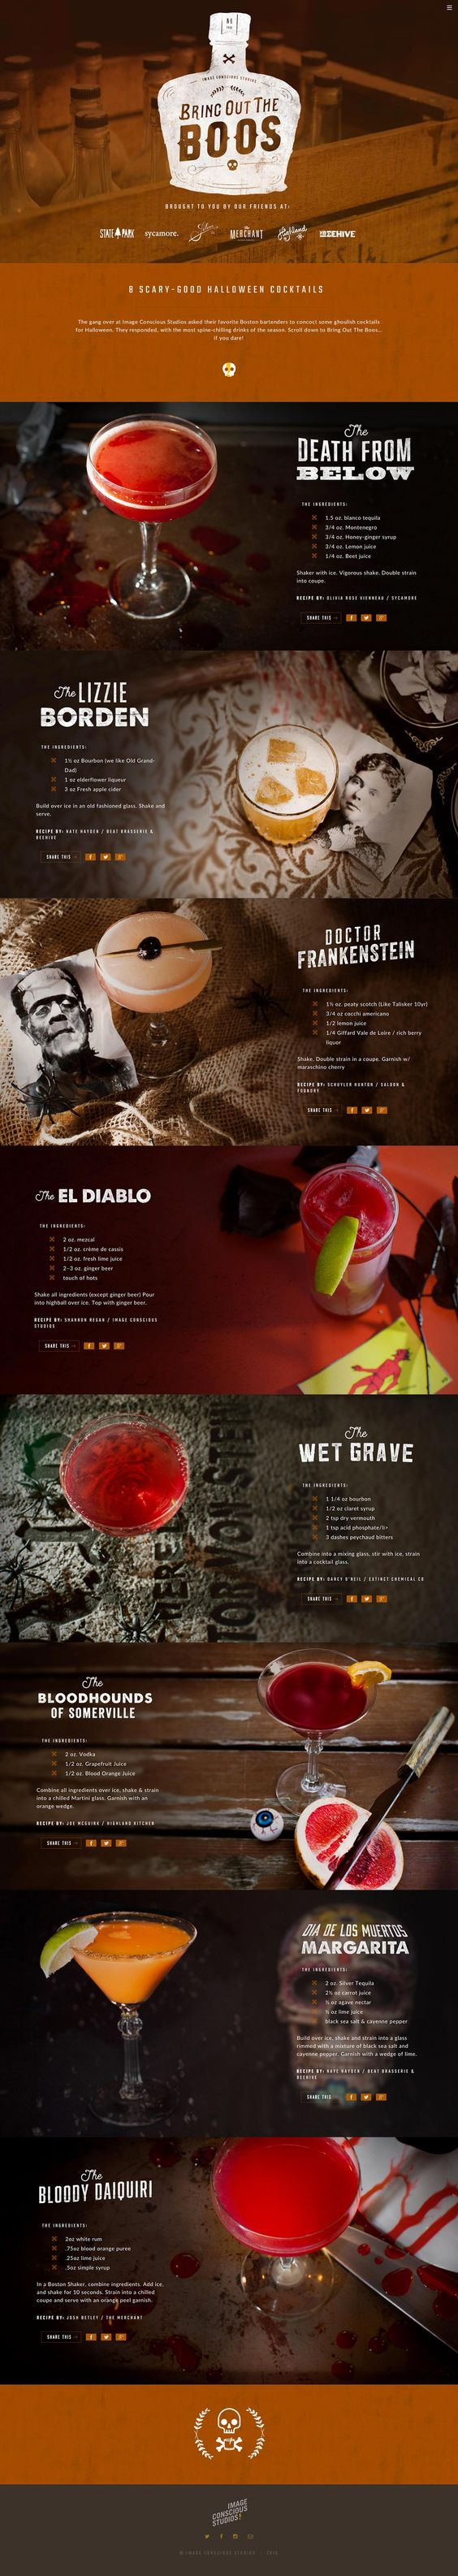 Dark Rich Colors - Bring Out the Boos. Halloween cocktails.